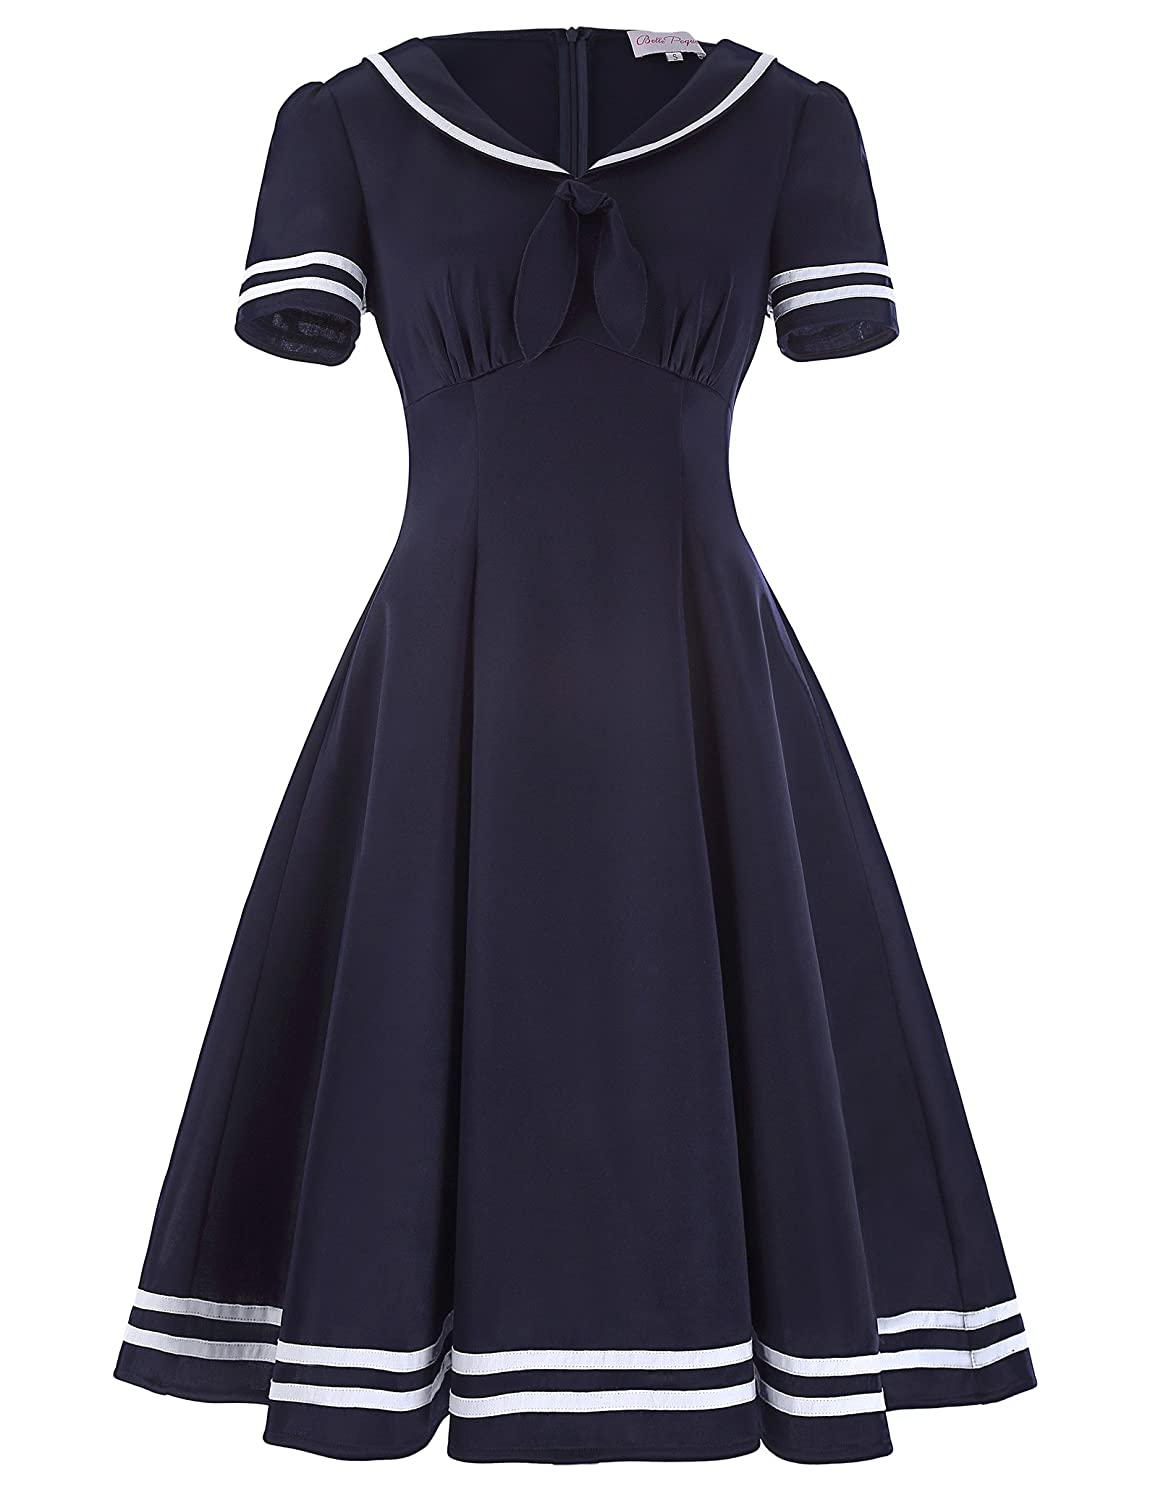 50s Costumes | 50s Halloween Costumes Belle Poque Womens Retro Sailor Dress Short Sleeve Cocktail Party Swing Dress $29.99 AT vintagedancer.com